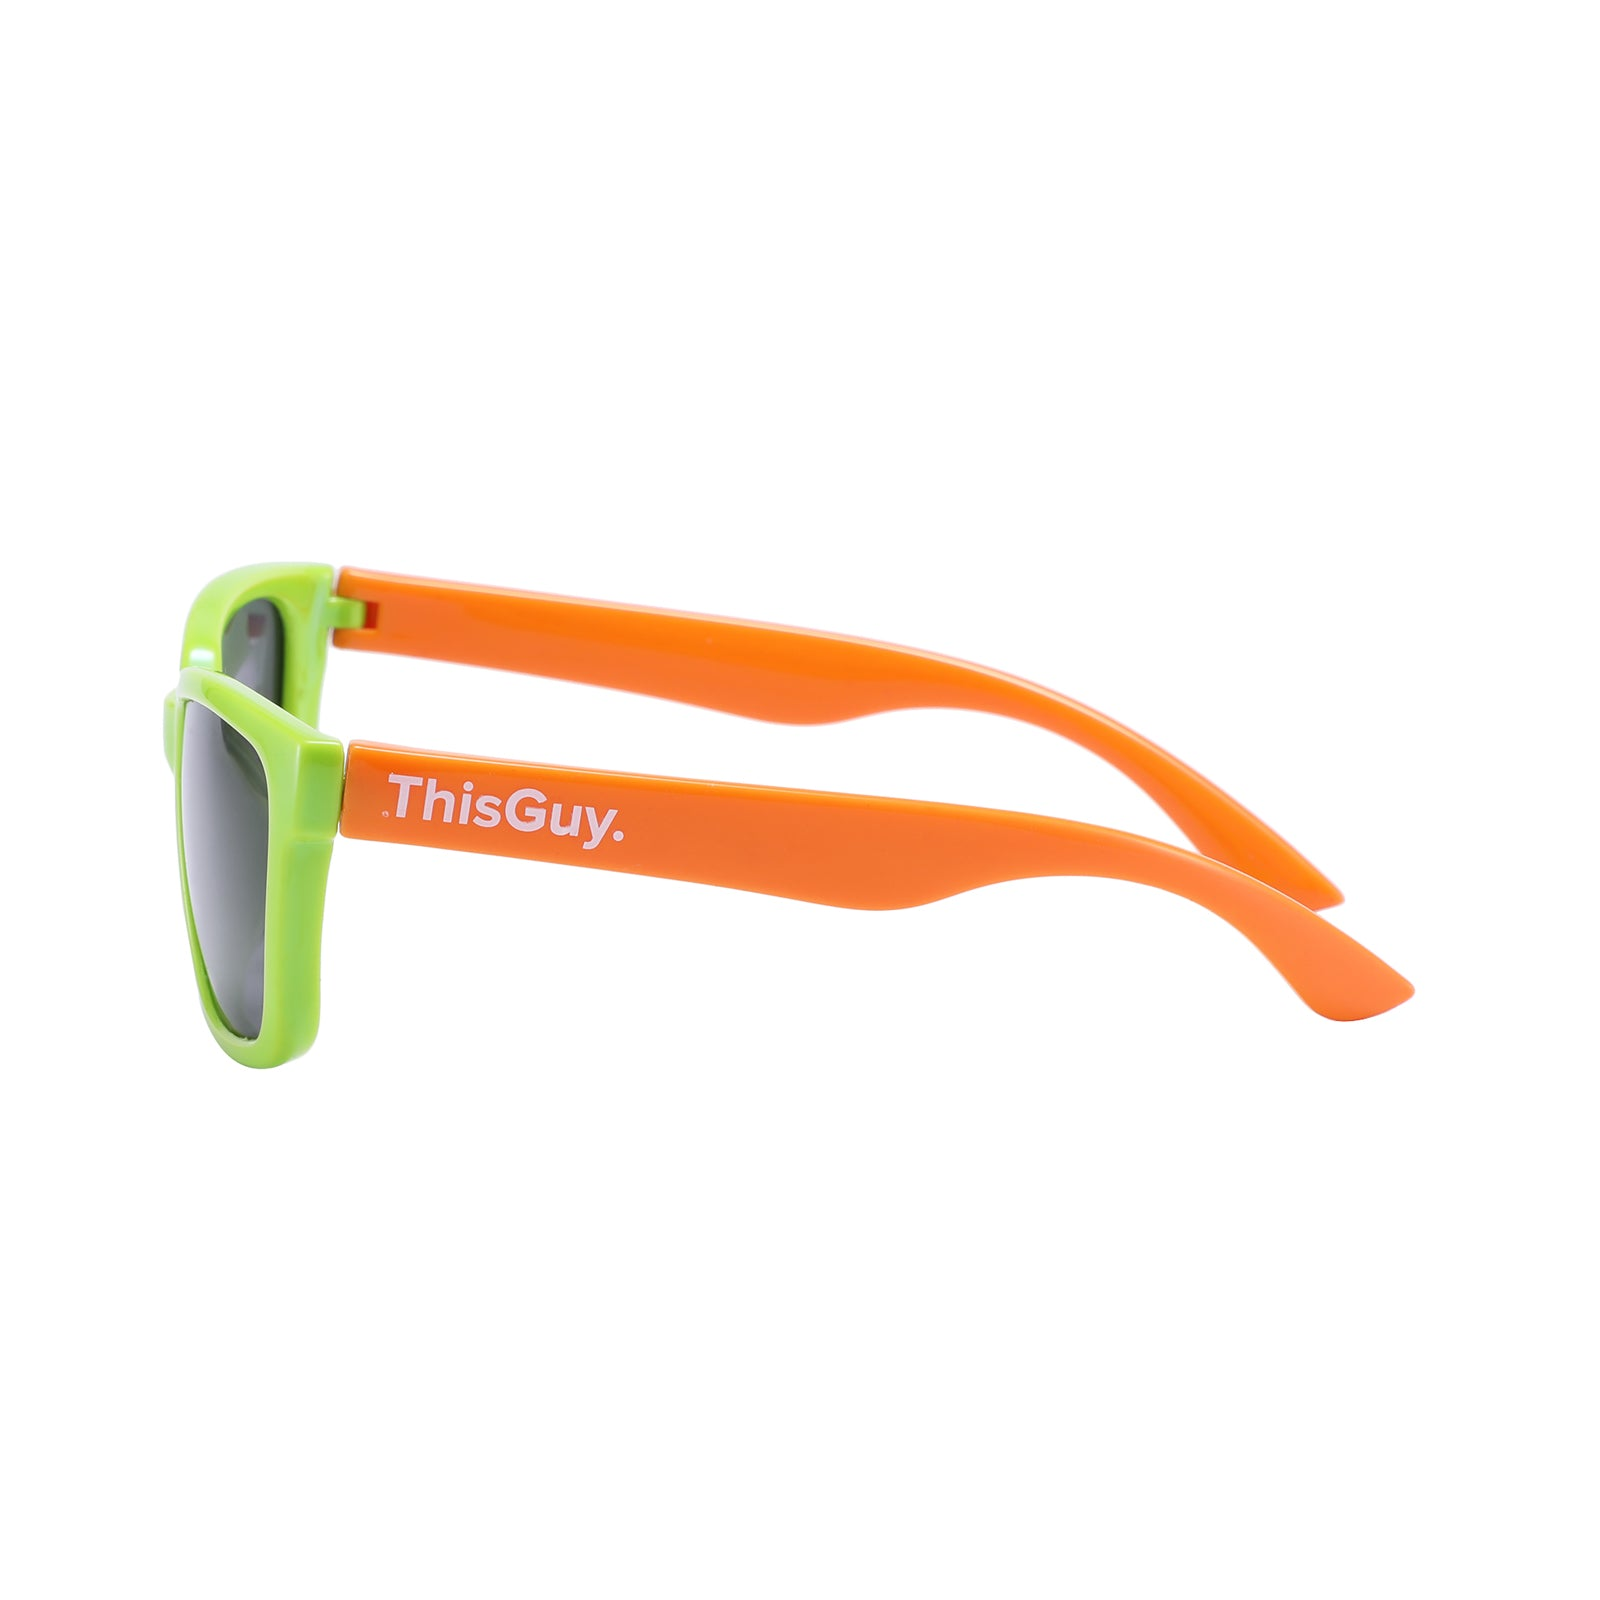 ThisGuy Kids Sunglasses - Green and Tiger Orange Wayfarers